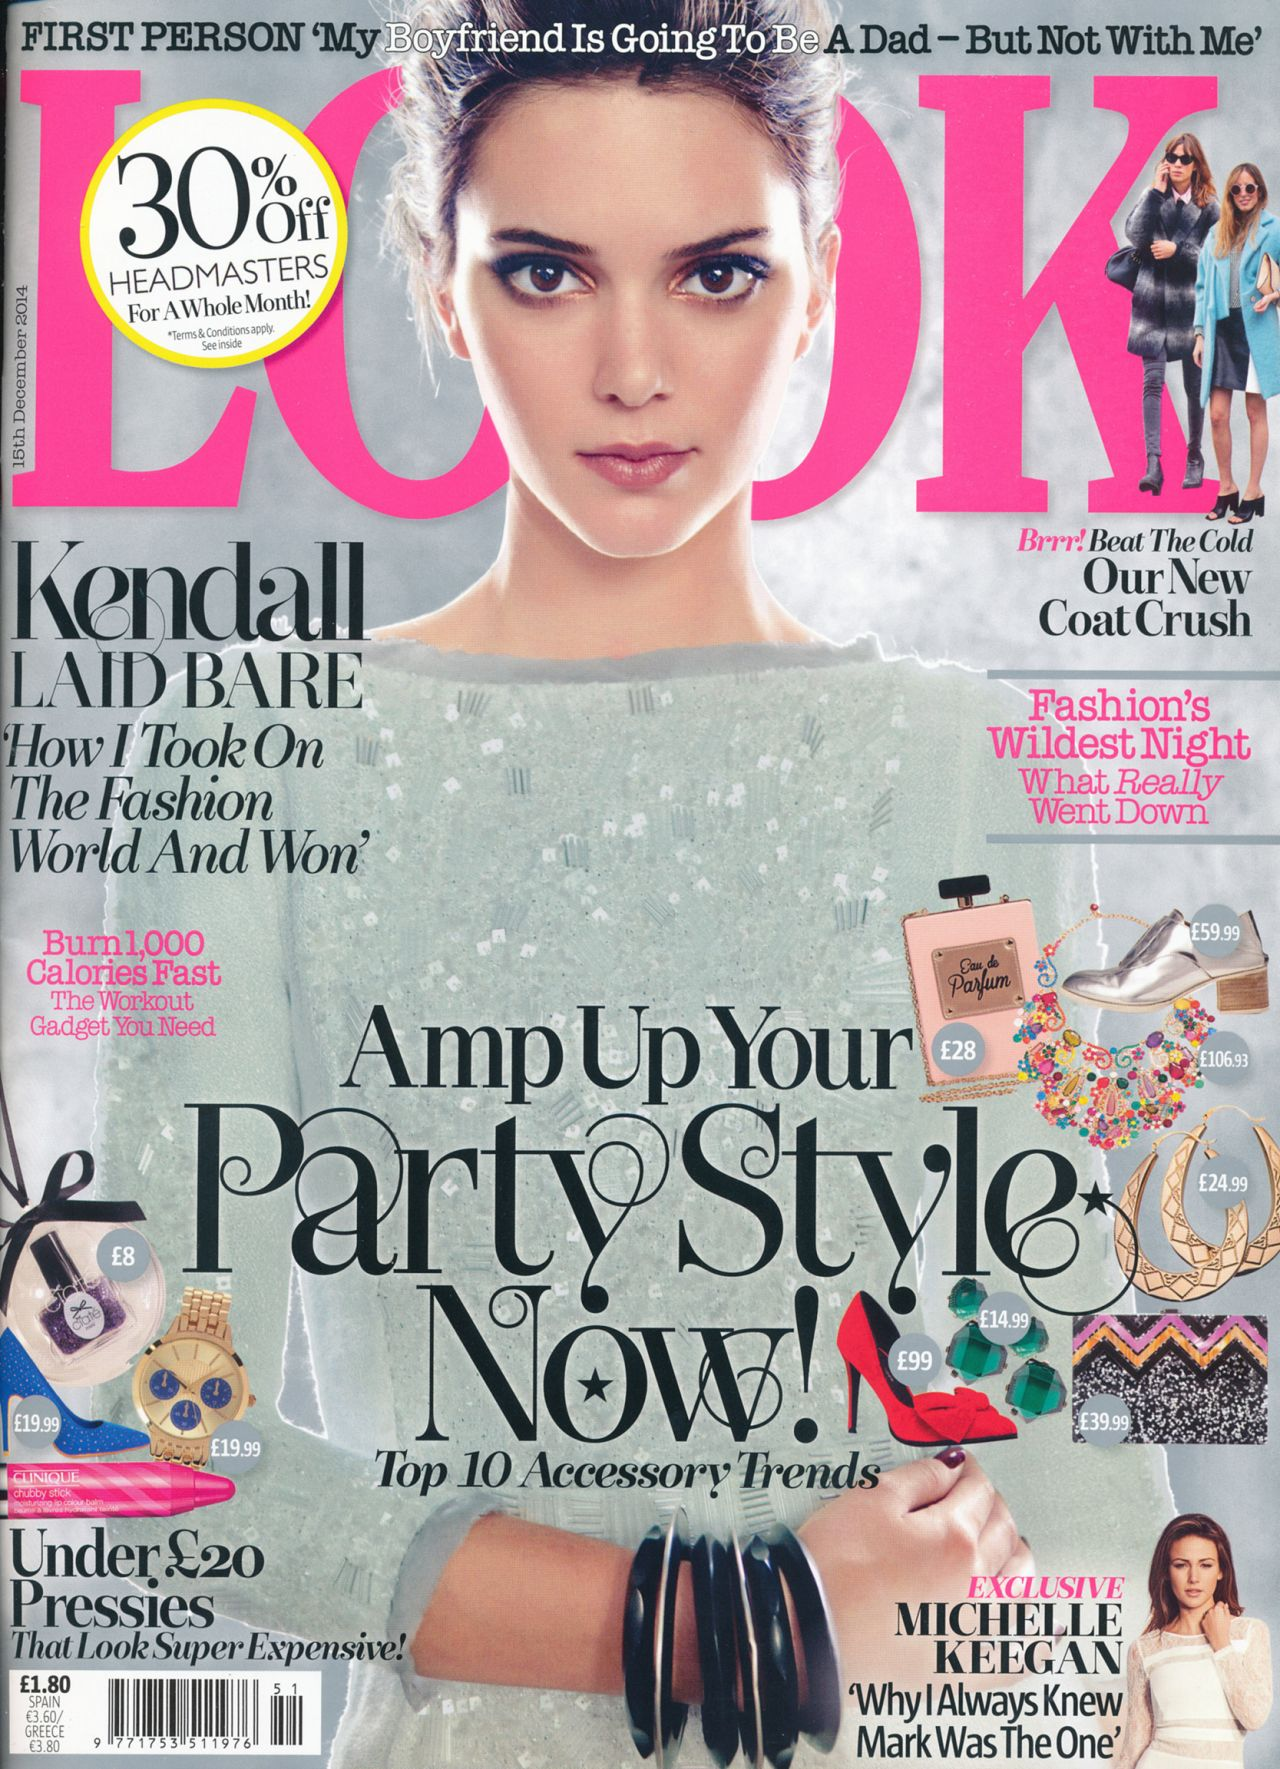 Kendall Jenner - Look Magazine December 15th 2014 Issue